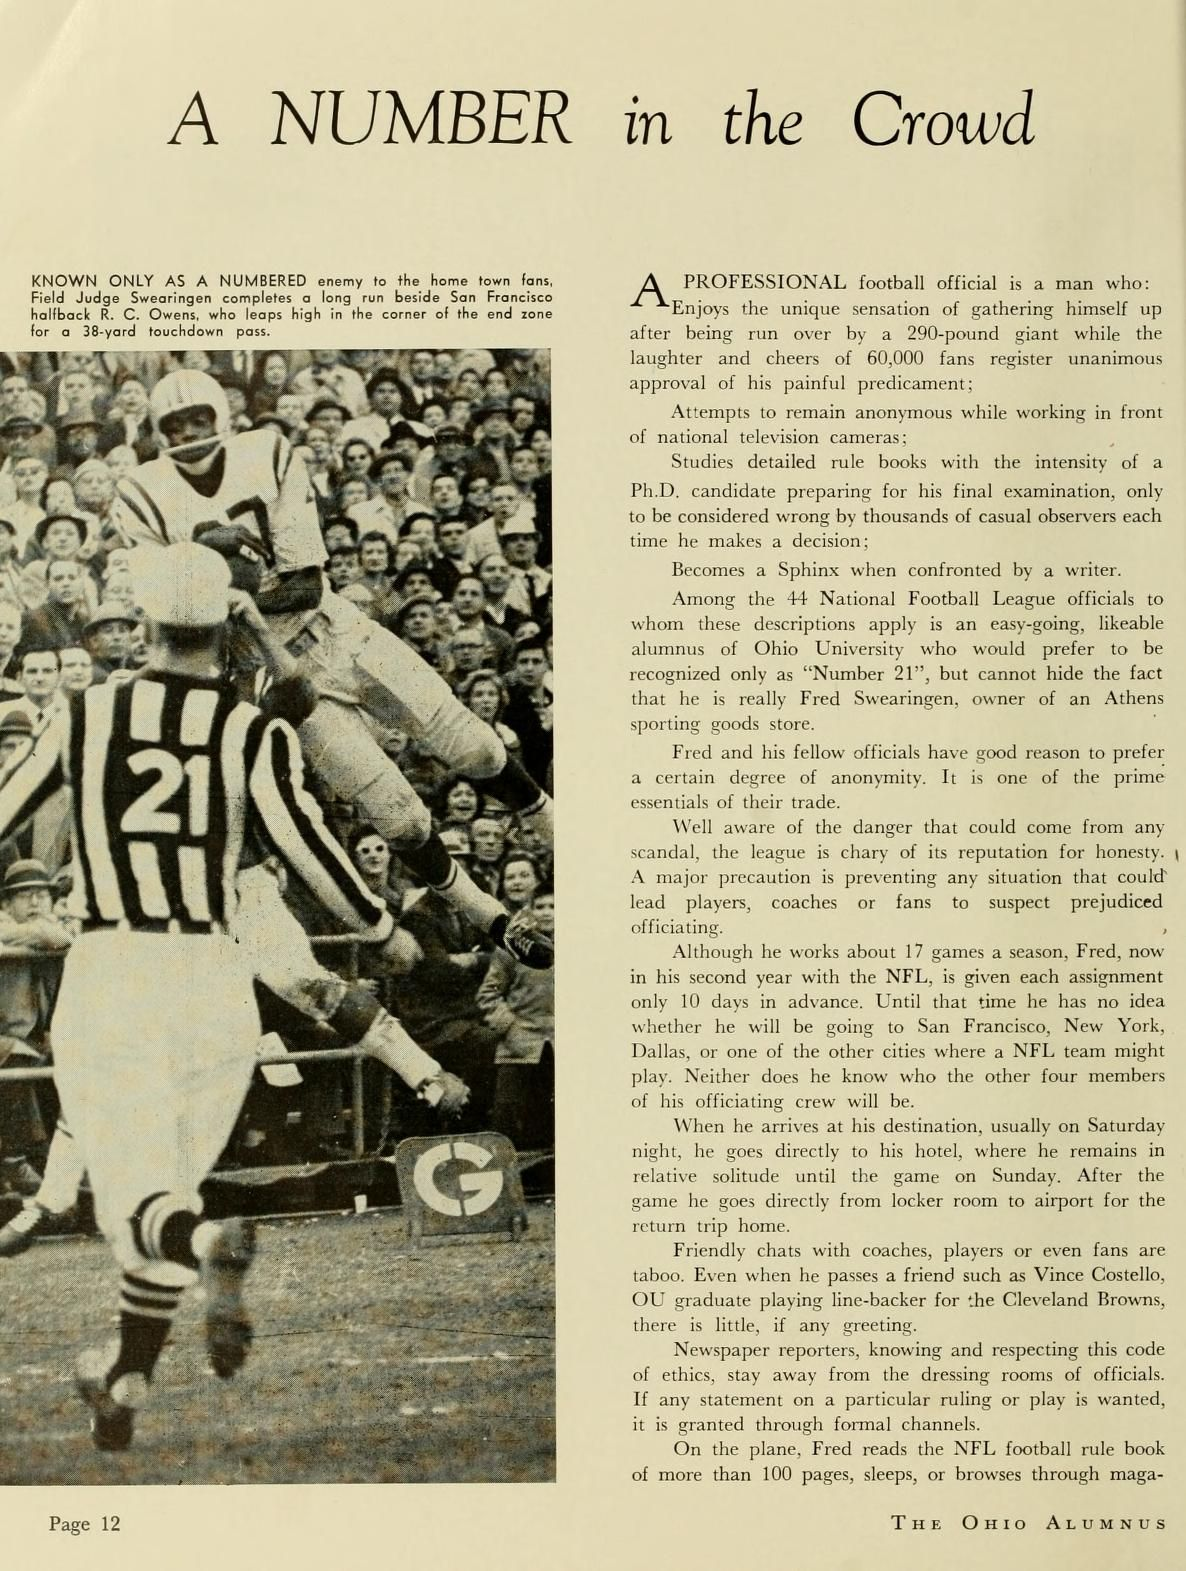 """The Ohio Alumnus, October 1961. """"A Number in the Crowd"""